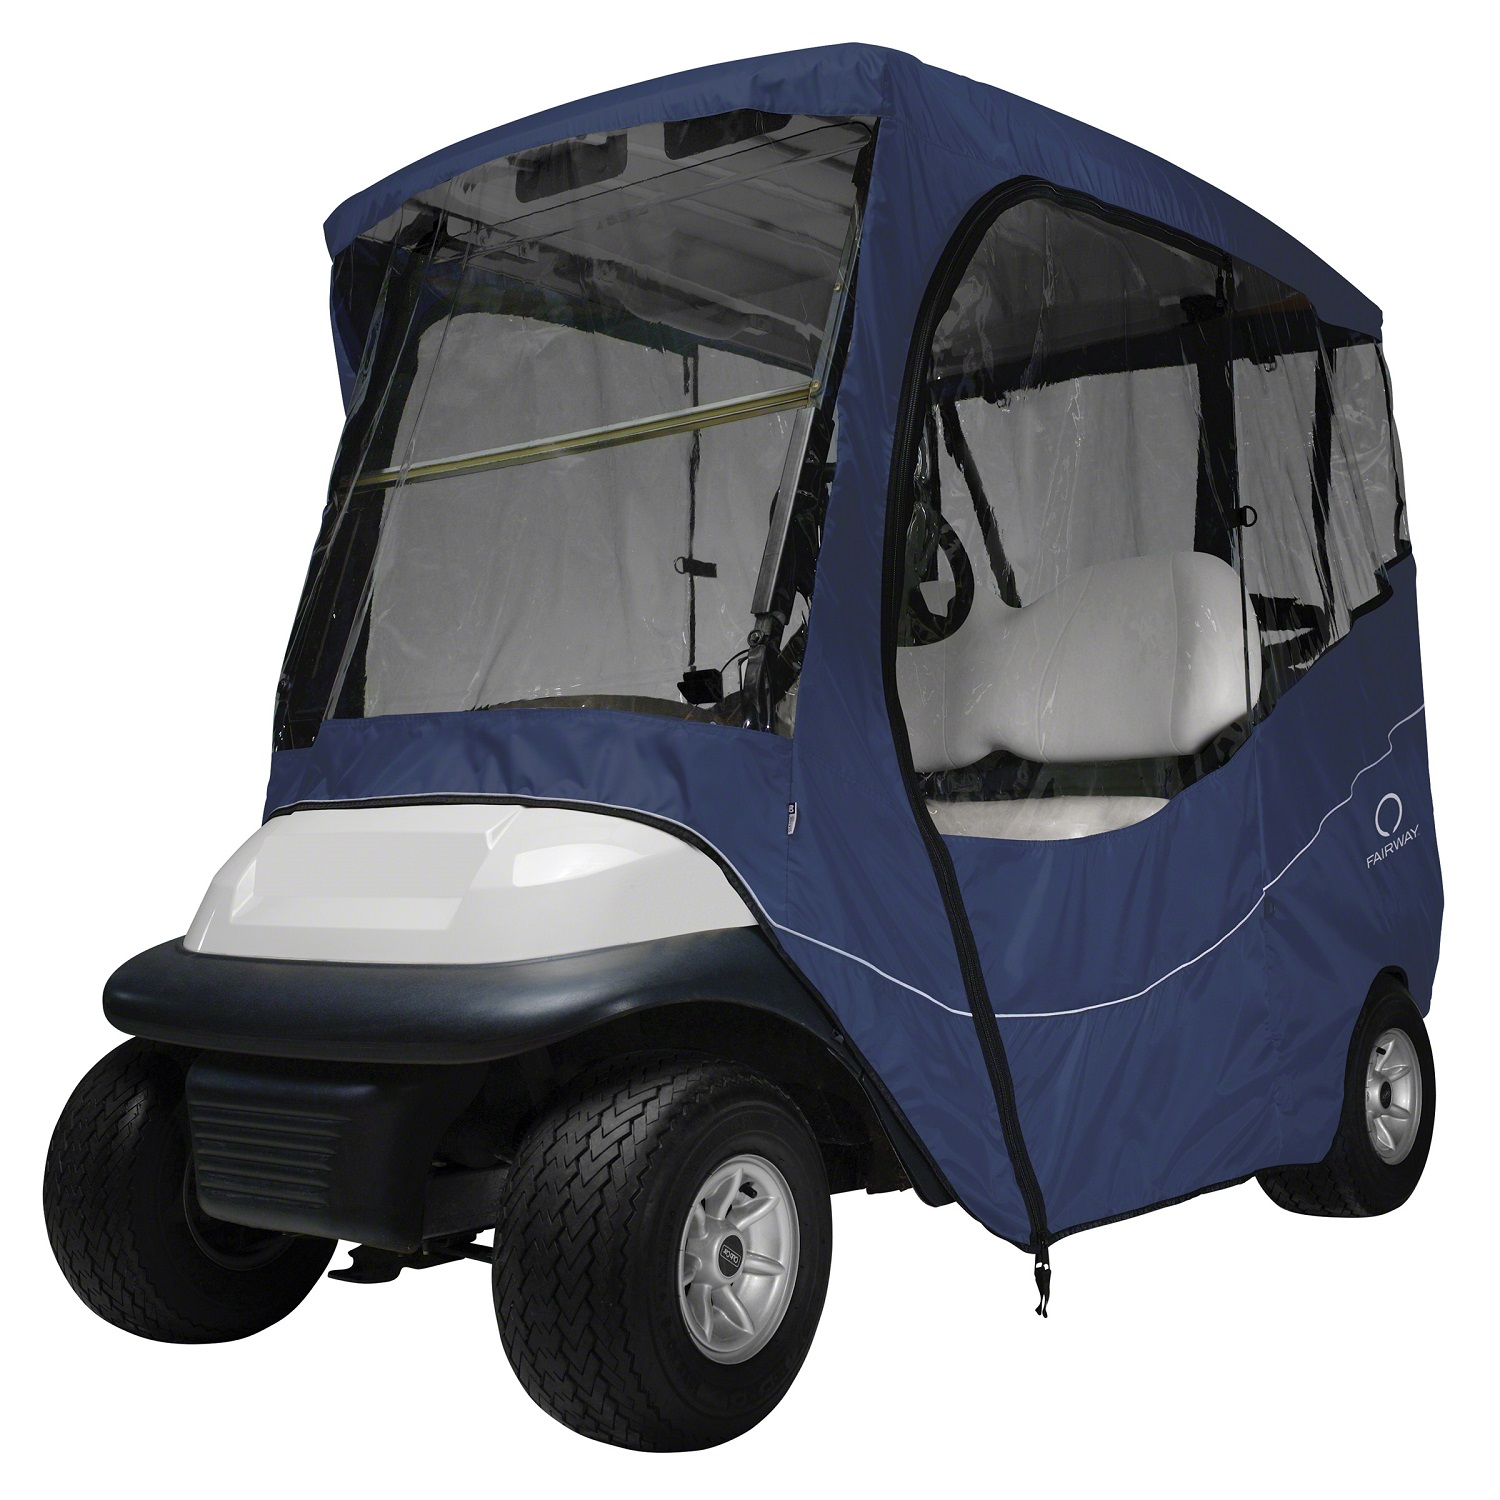 Fairway Travel Golf Cart Short Roof Enclosure - Navy